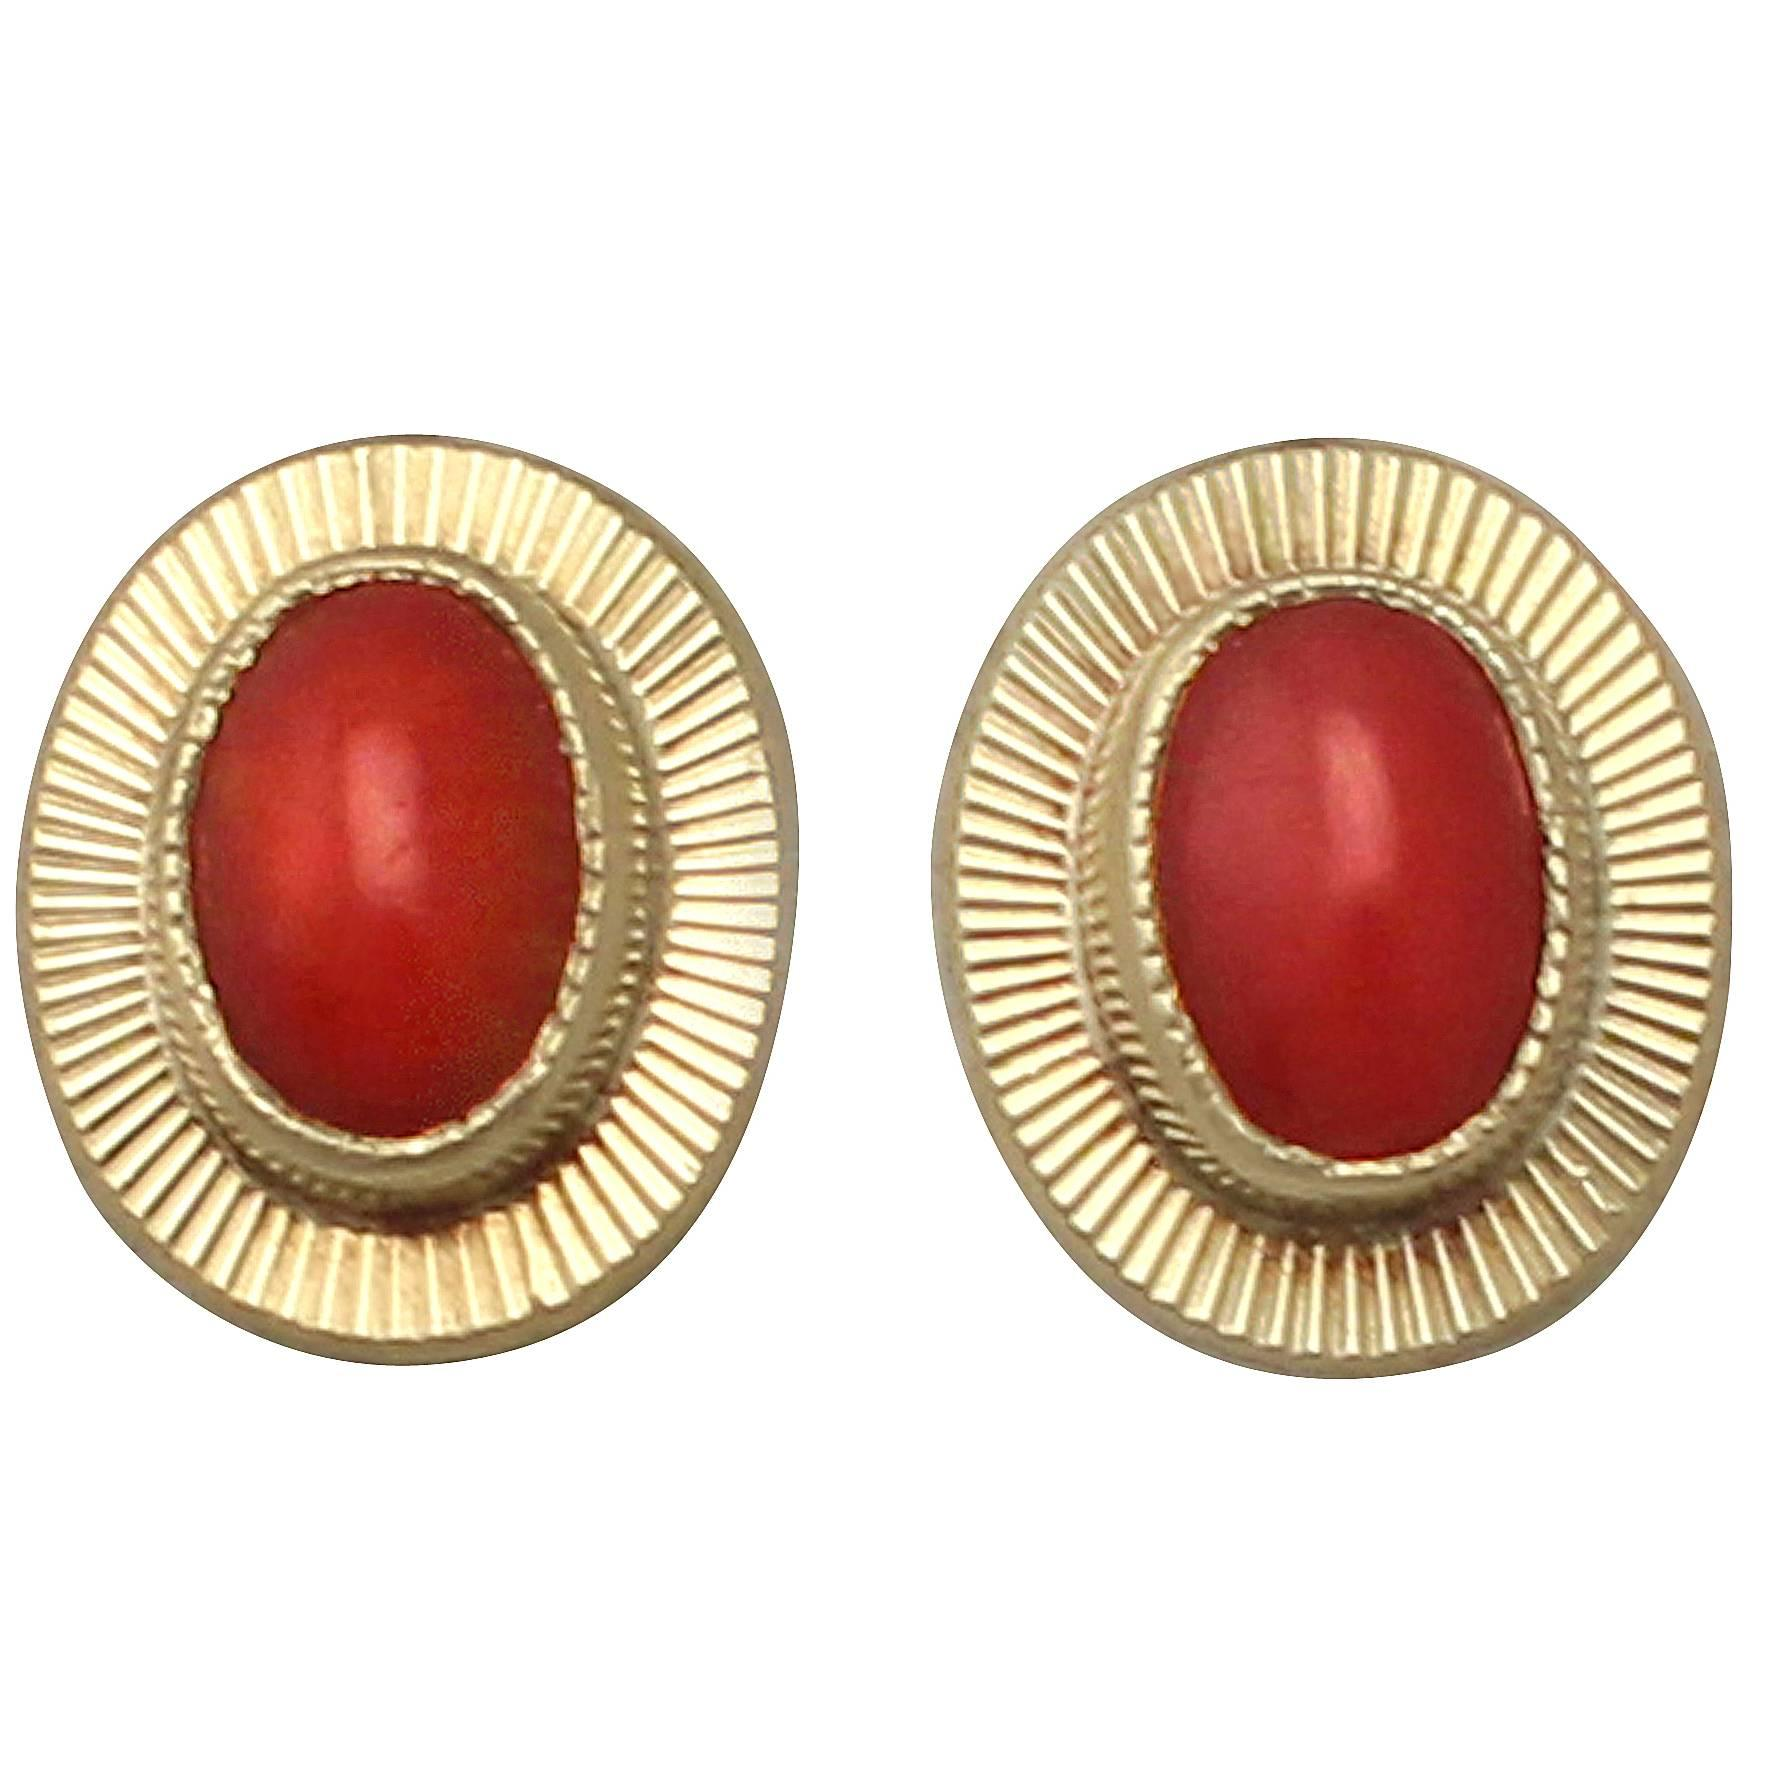 gold gorgeous from the saint red s l more tone v earrings with id vintage yves for laurent jewelry stones